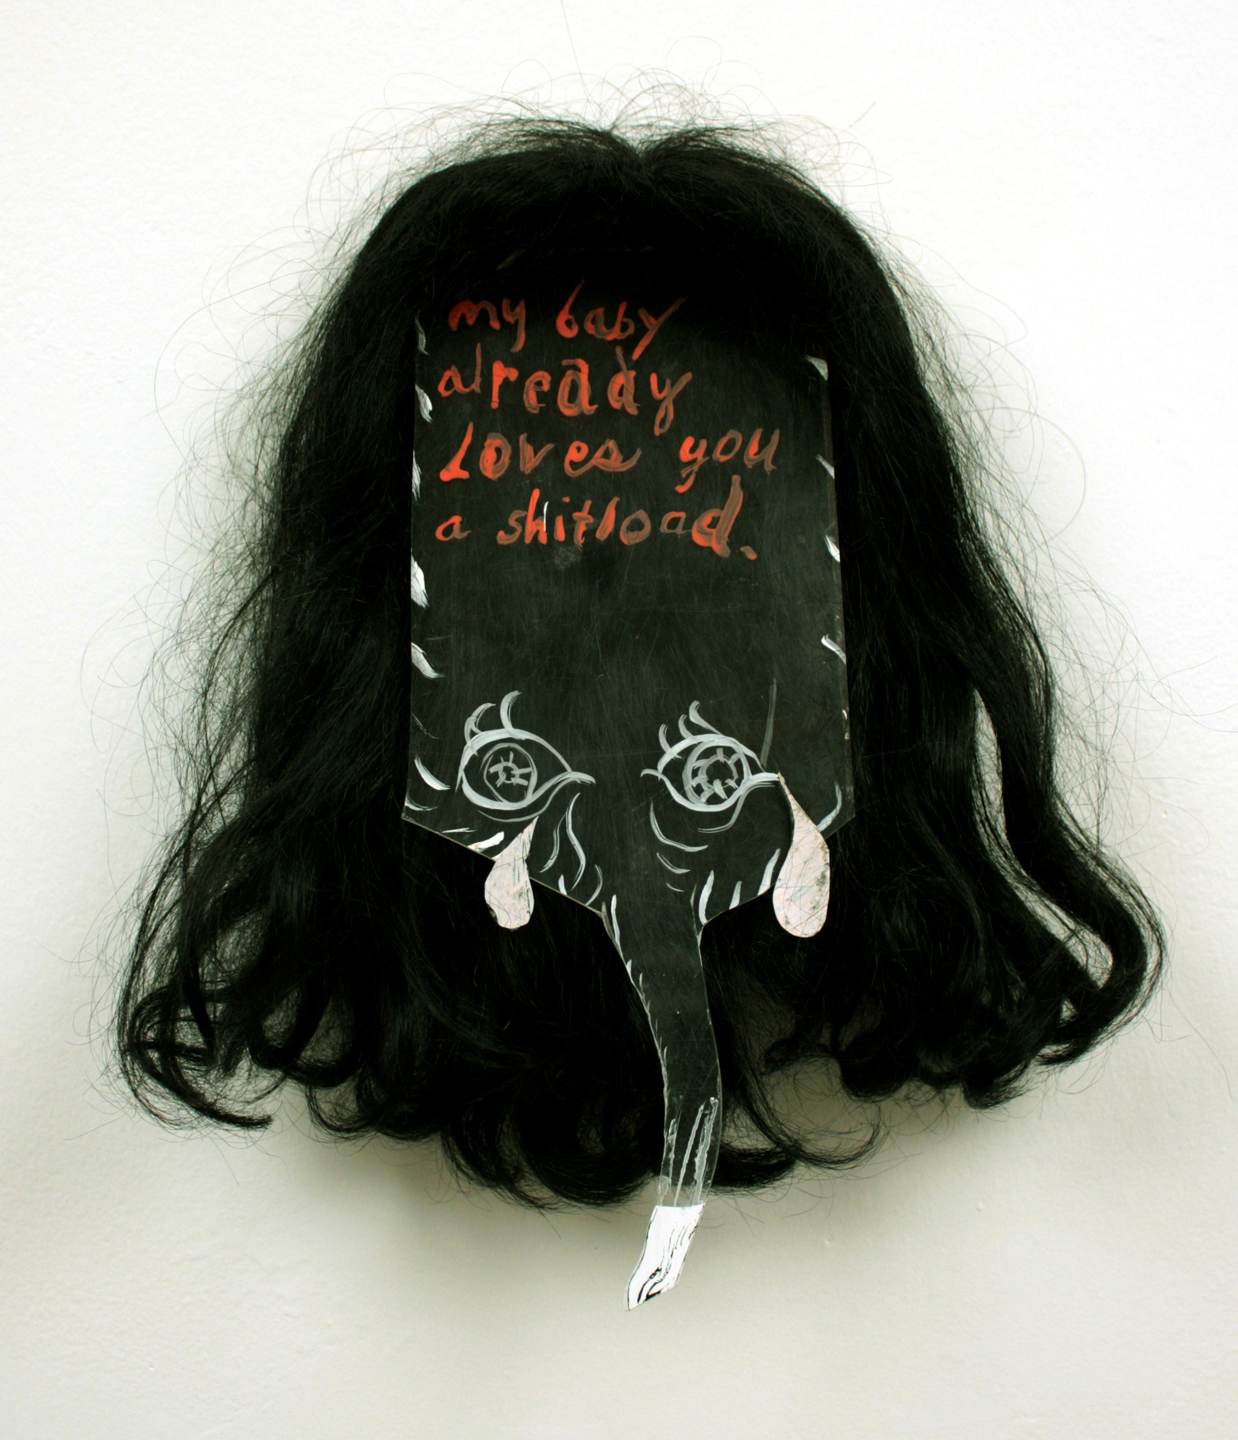 Bridget Mullen Archive Plexiglass, hair, acrylic paint, nails, tar paper